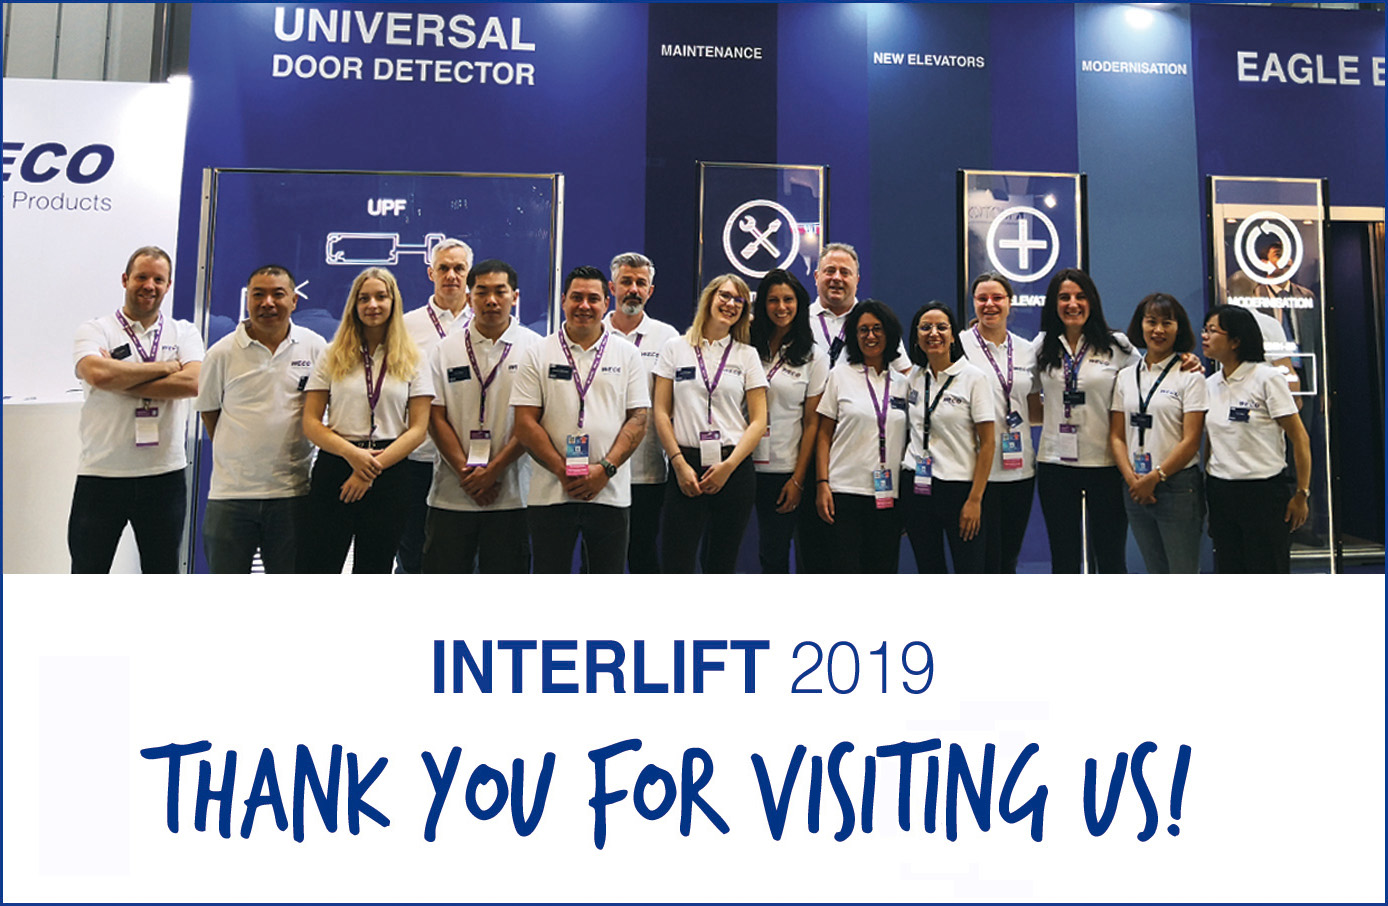 Interlift 2019 – Thank you for visiting us